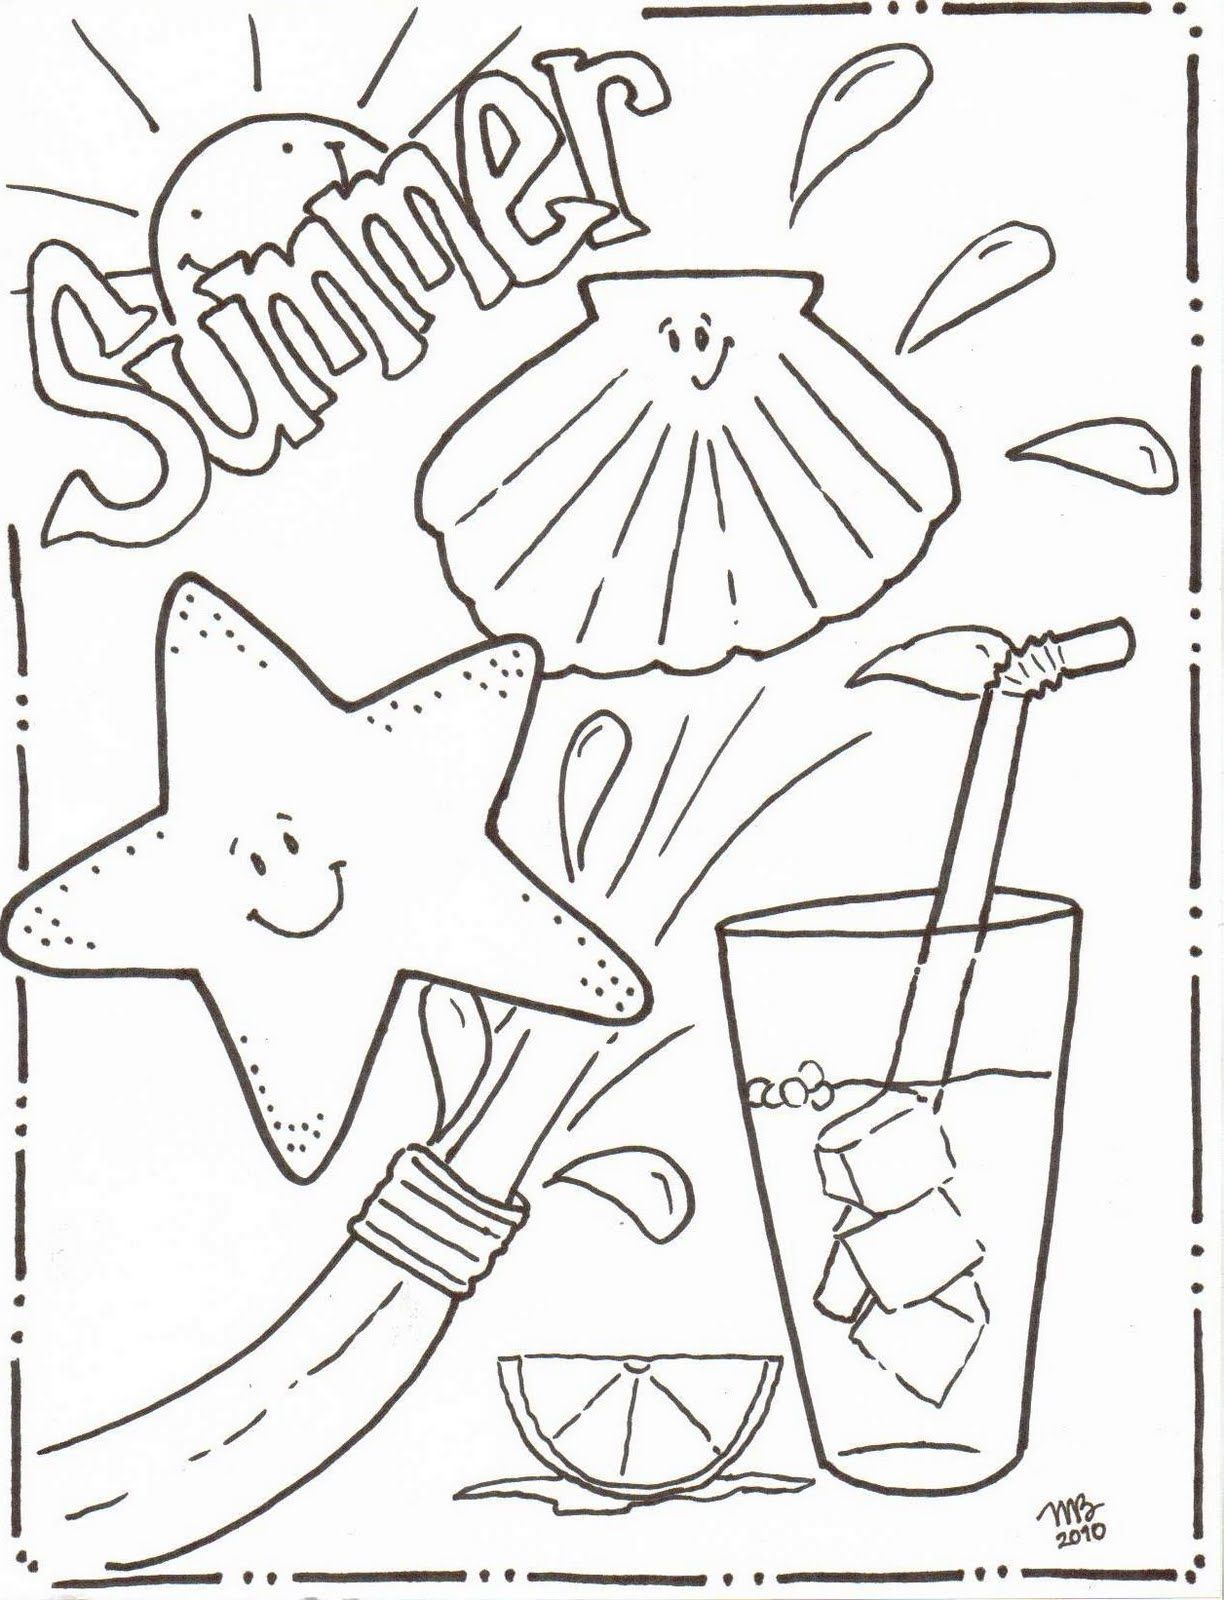 Summer Coloring Pages Summer coloring sheets, Summer